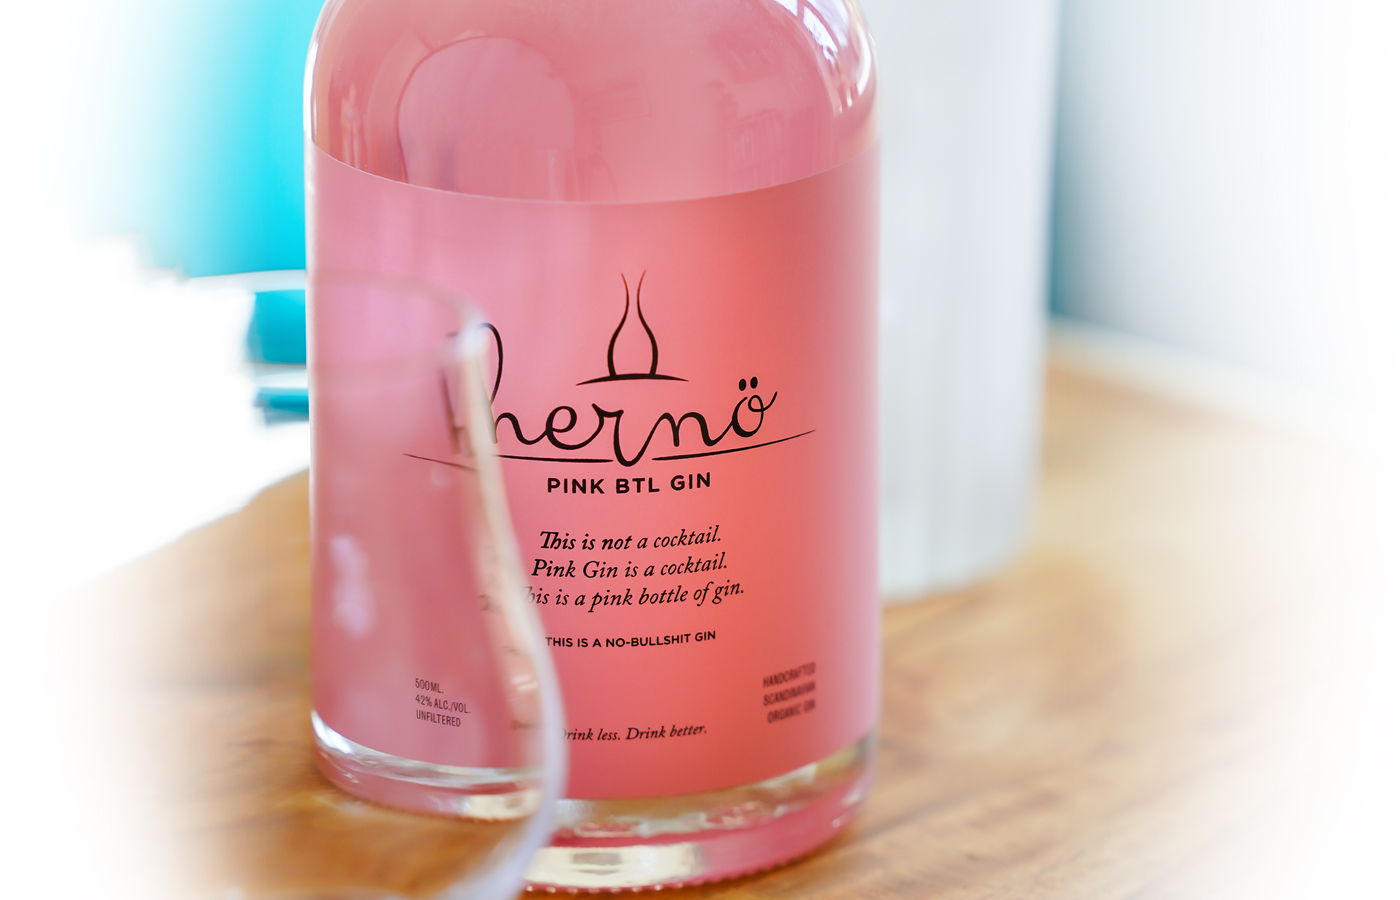 Hernö Pink BTL Gin. Photo by Michael Sperling.